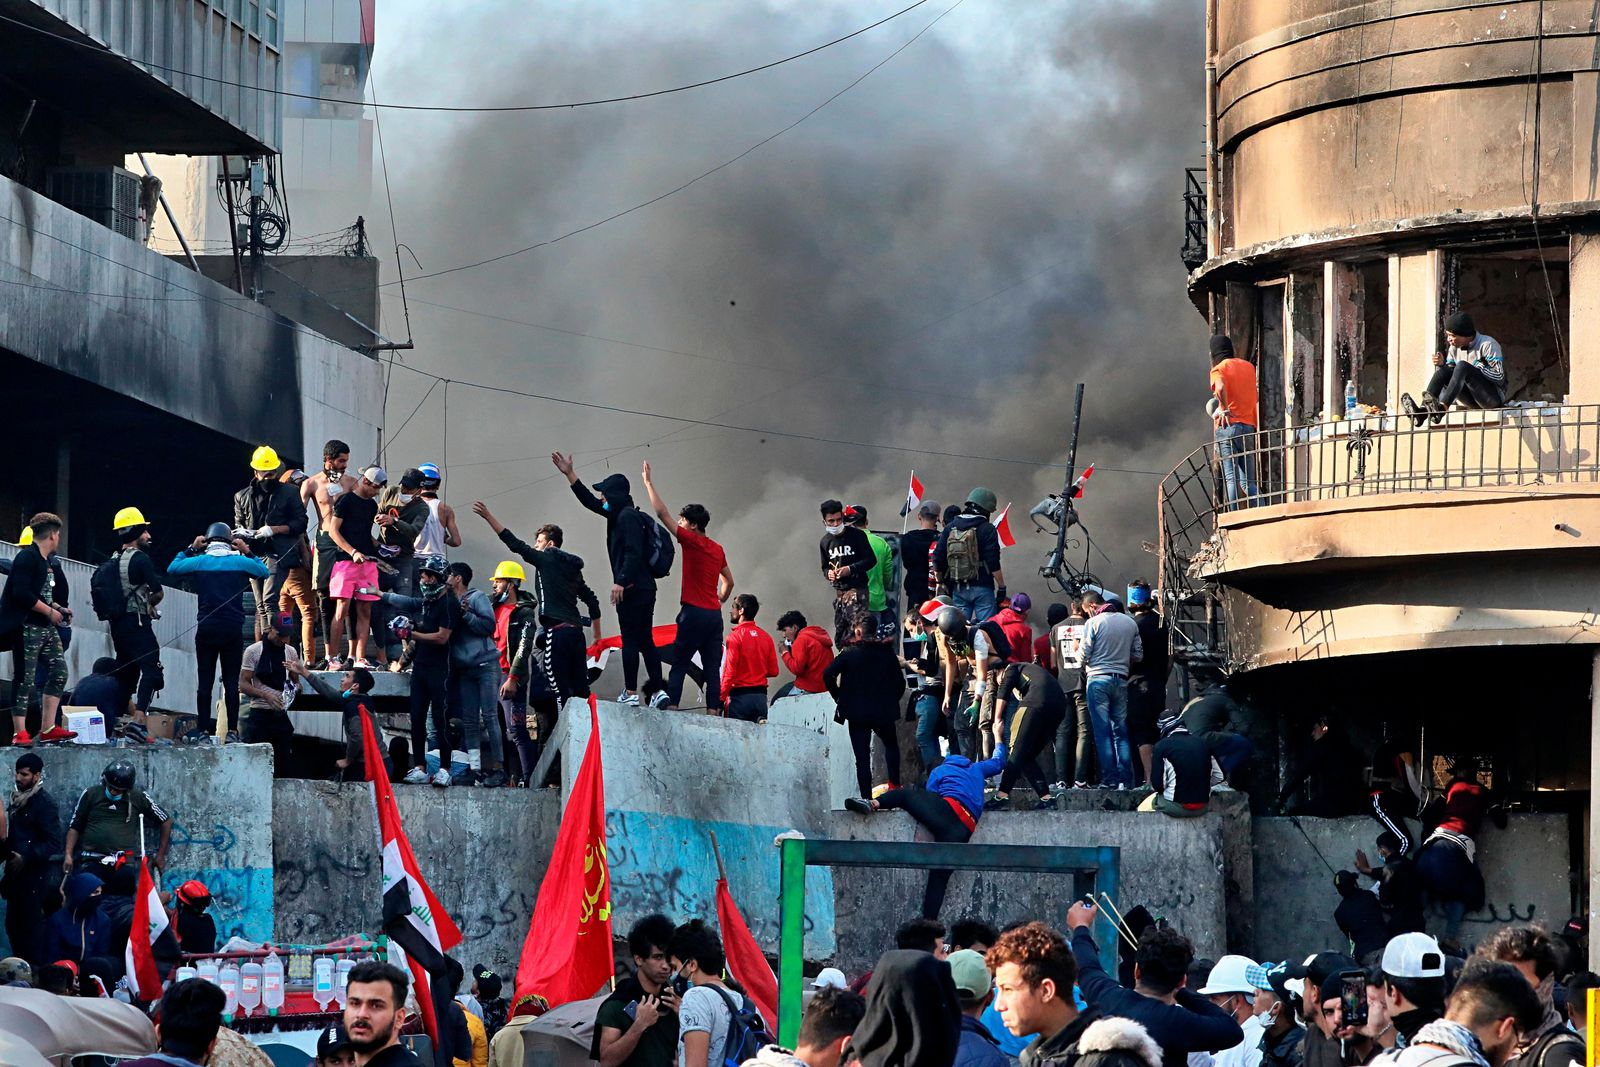 Anti-government protesters stand on a concrete wall erected by security forces to close Rasheed Street during clashes in Baghdad, Iraq, Thursday, Nov. 28, 2019. Scores of protesters have been shot dead in the last 24 hours, amid spiraling violence in Baghdad and southern Iraq, officials said. (AP Photo/Khalid Mohammed)